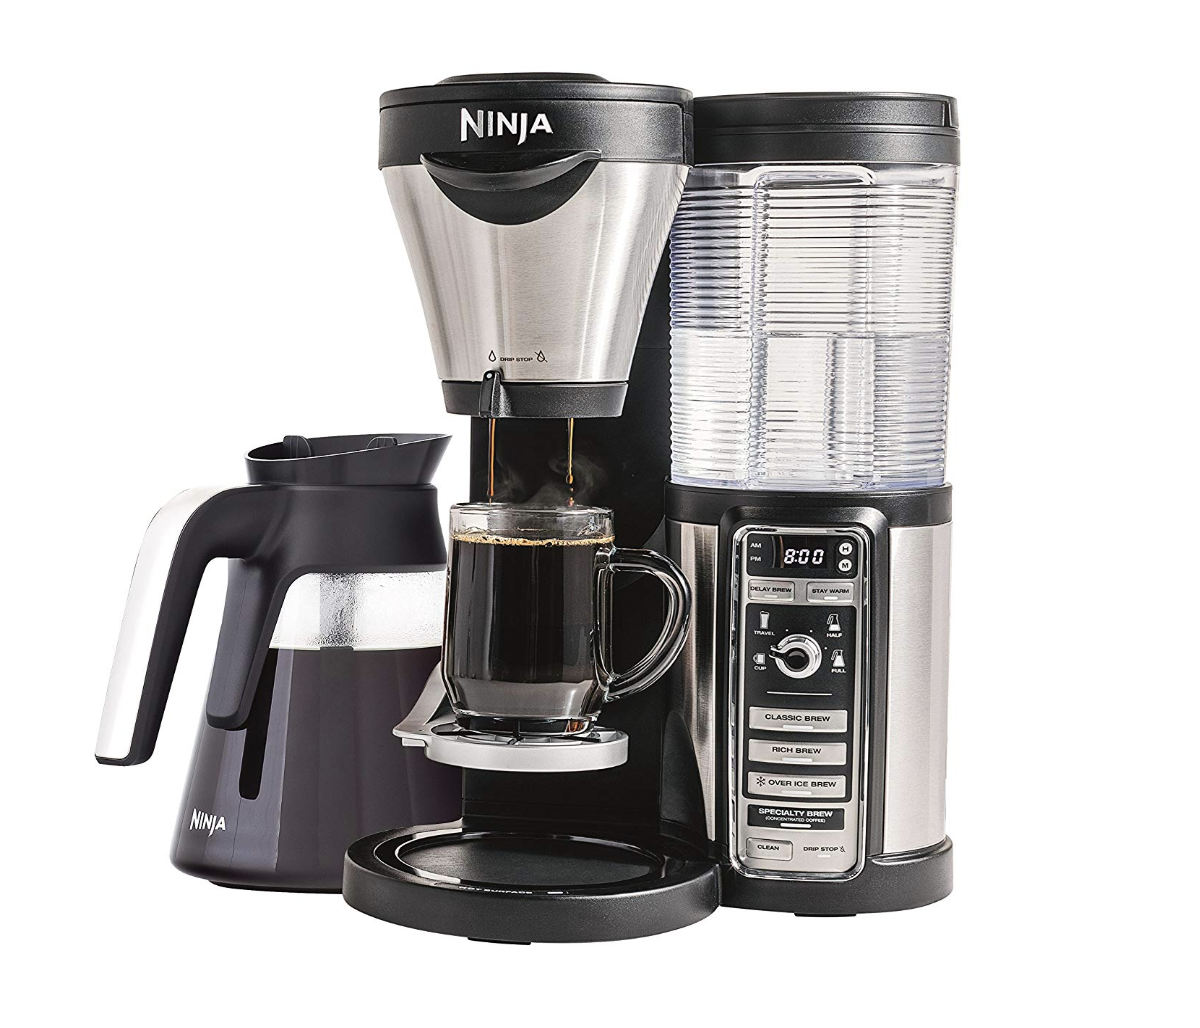 Ninja Coffee Maker for Hot/Iced/Frozen Coffee with Four Brew Sizes